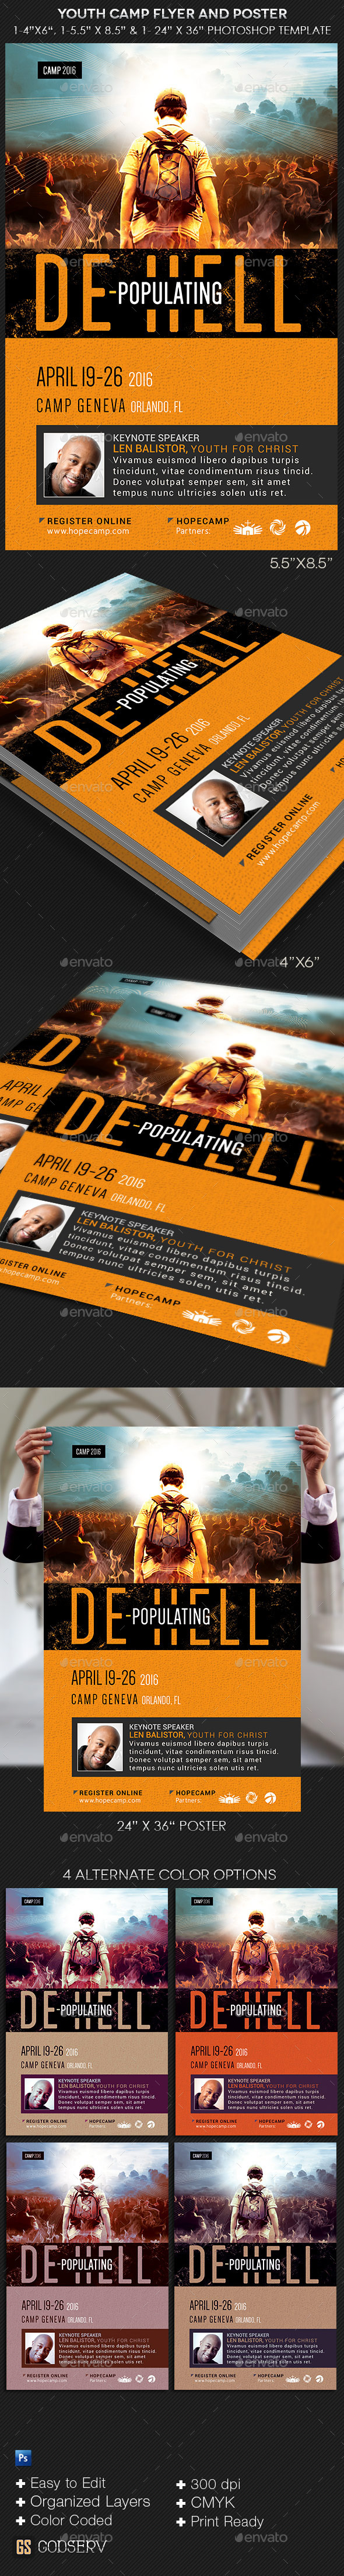 Youth Camp Church Flyer Poster Template - Church Flyers